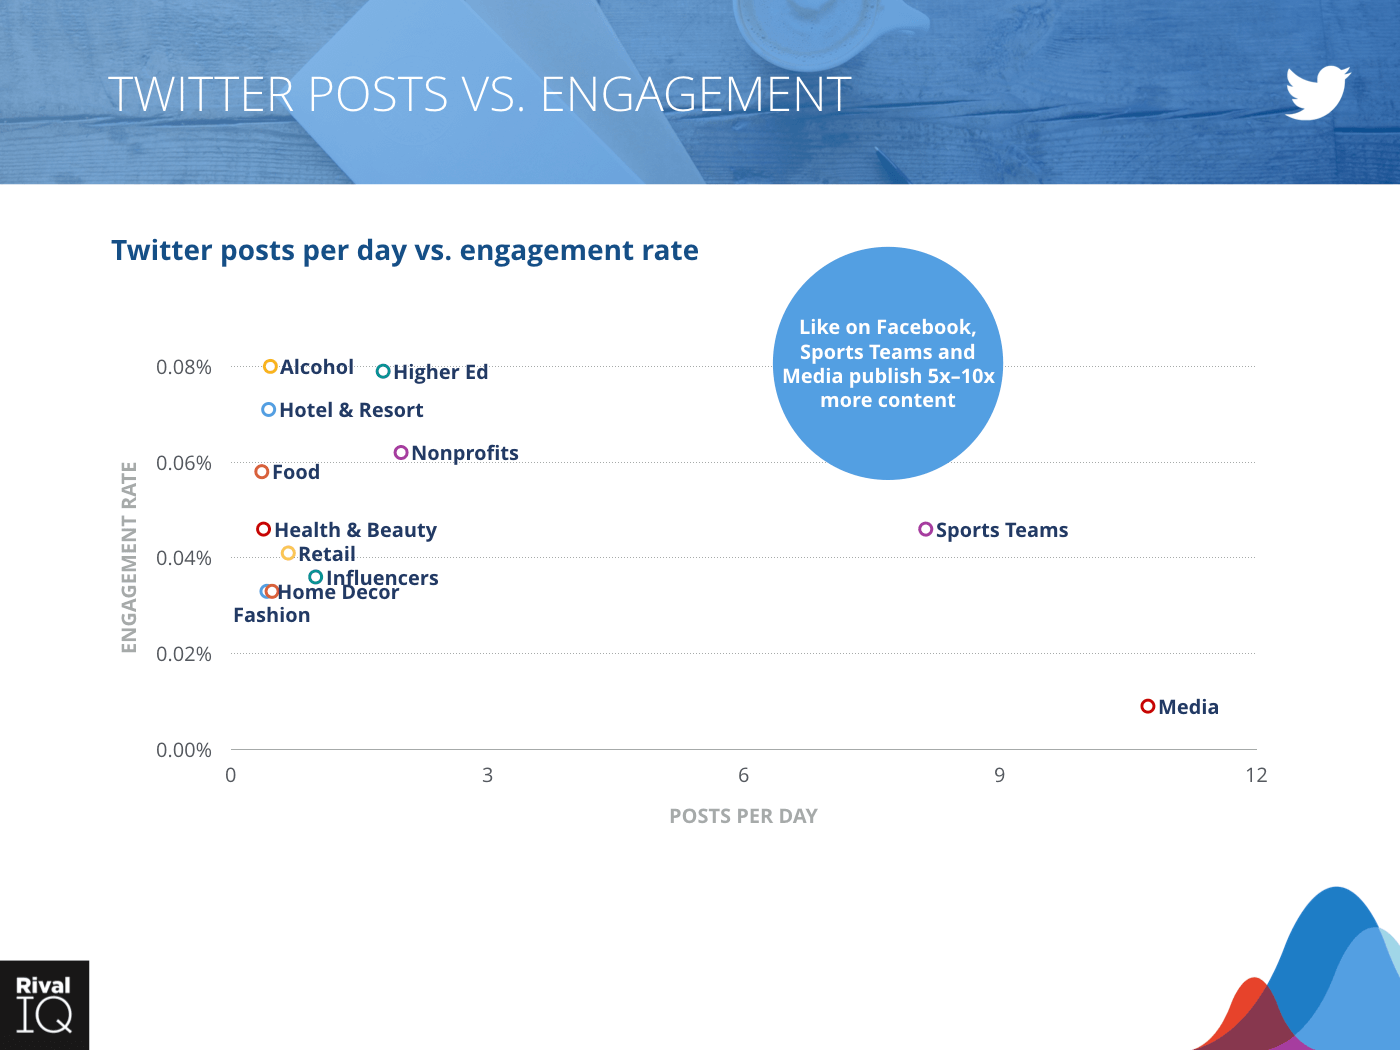 Bar graph of Twitter posts per day vs. engagement rate, all industries. Sports Teams and Media have 5-10x more content